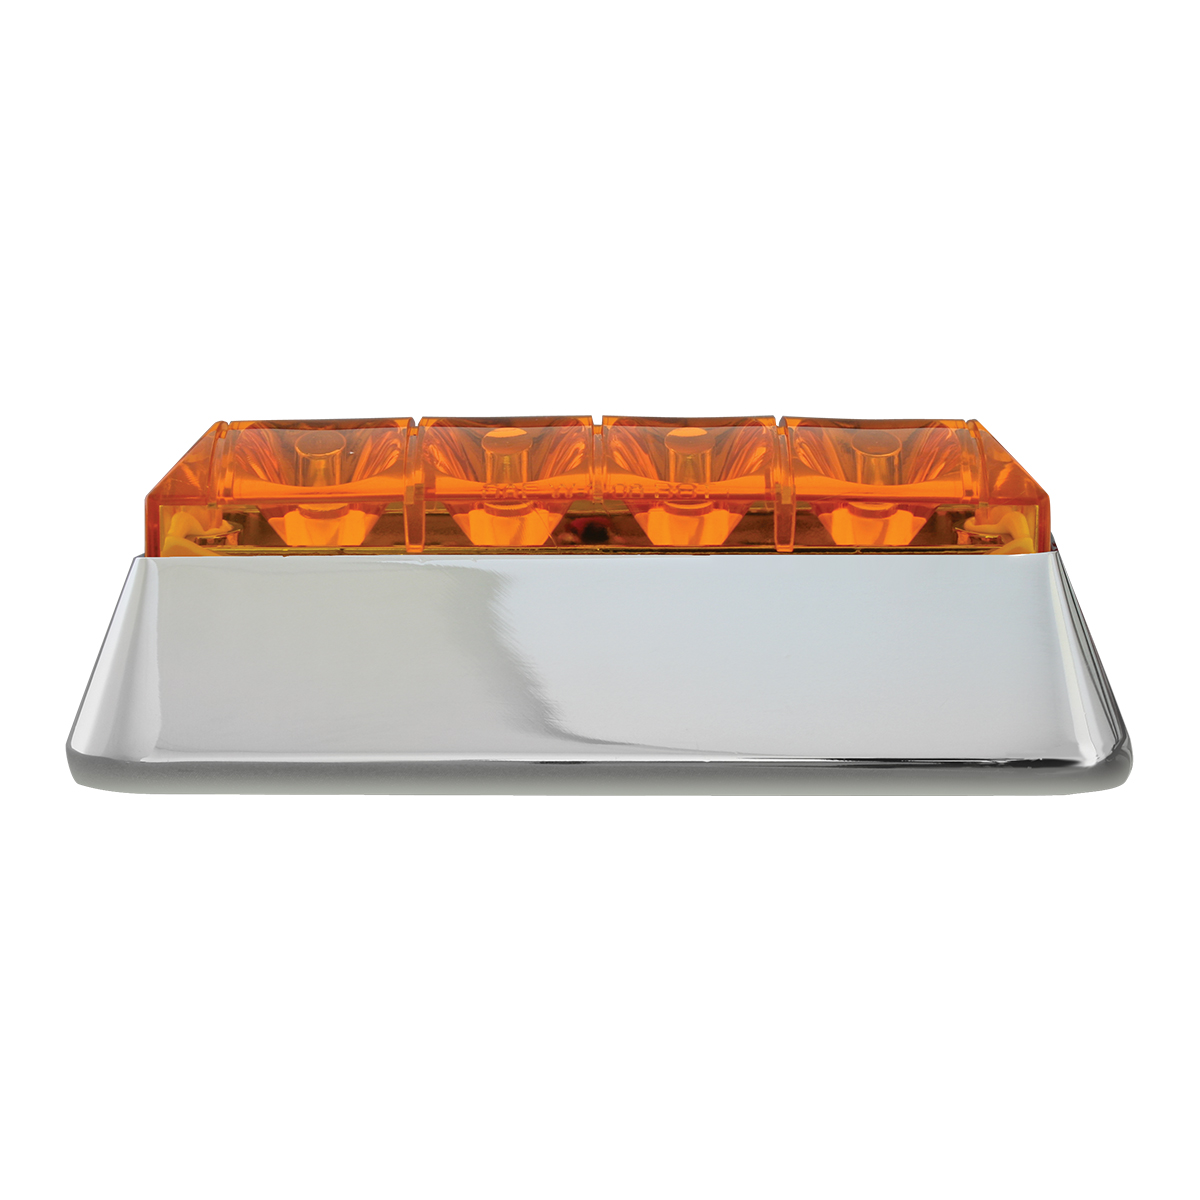 76530 Amber/Amber Medium Rectangular 4 LED Strobe Light